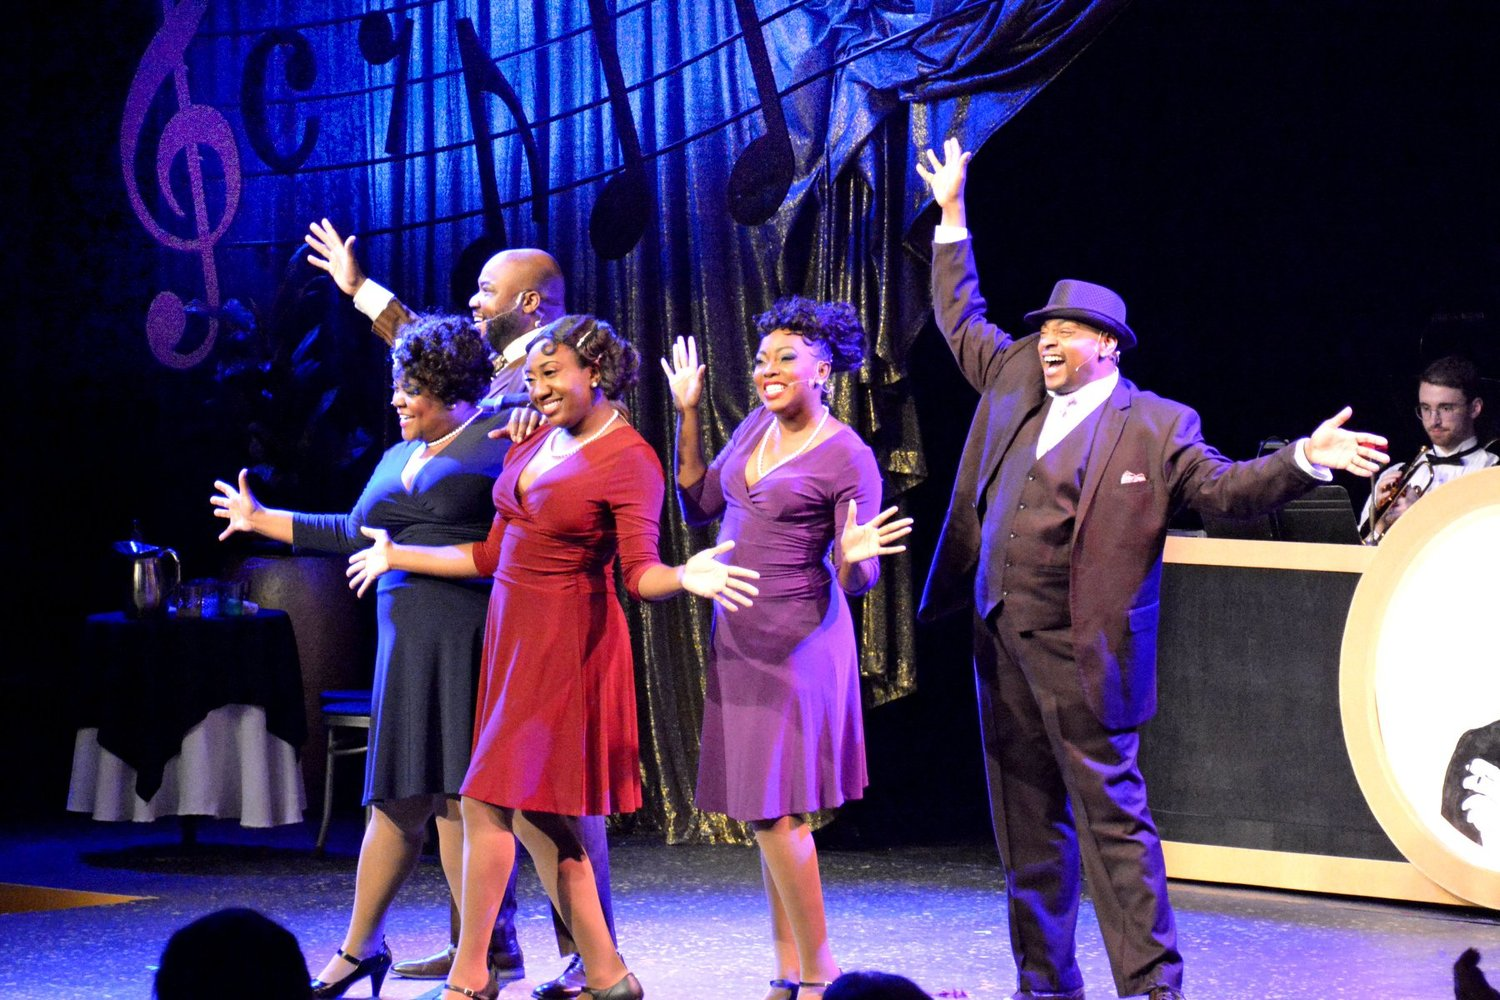 BWW Review: AIN'T MISBEHAVIN' at Alhambra Theatre And Dining